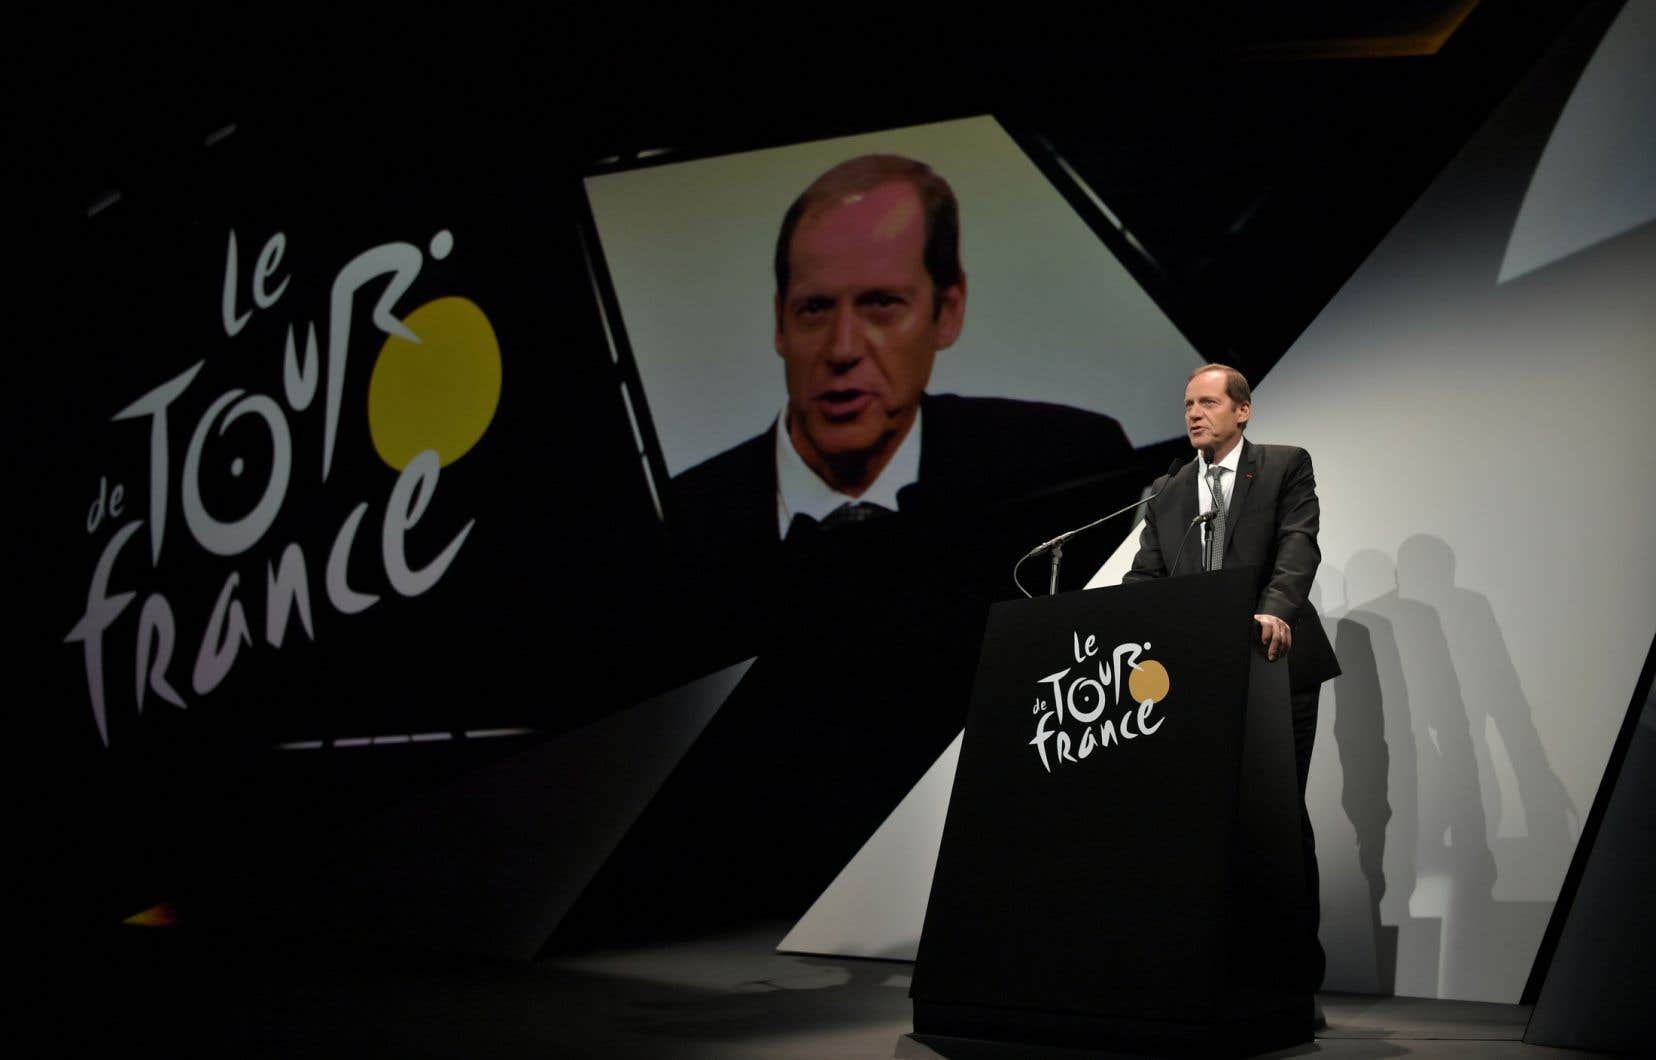 Le directeur du Tour de France, Christian Prudhomme